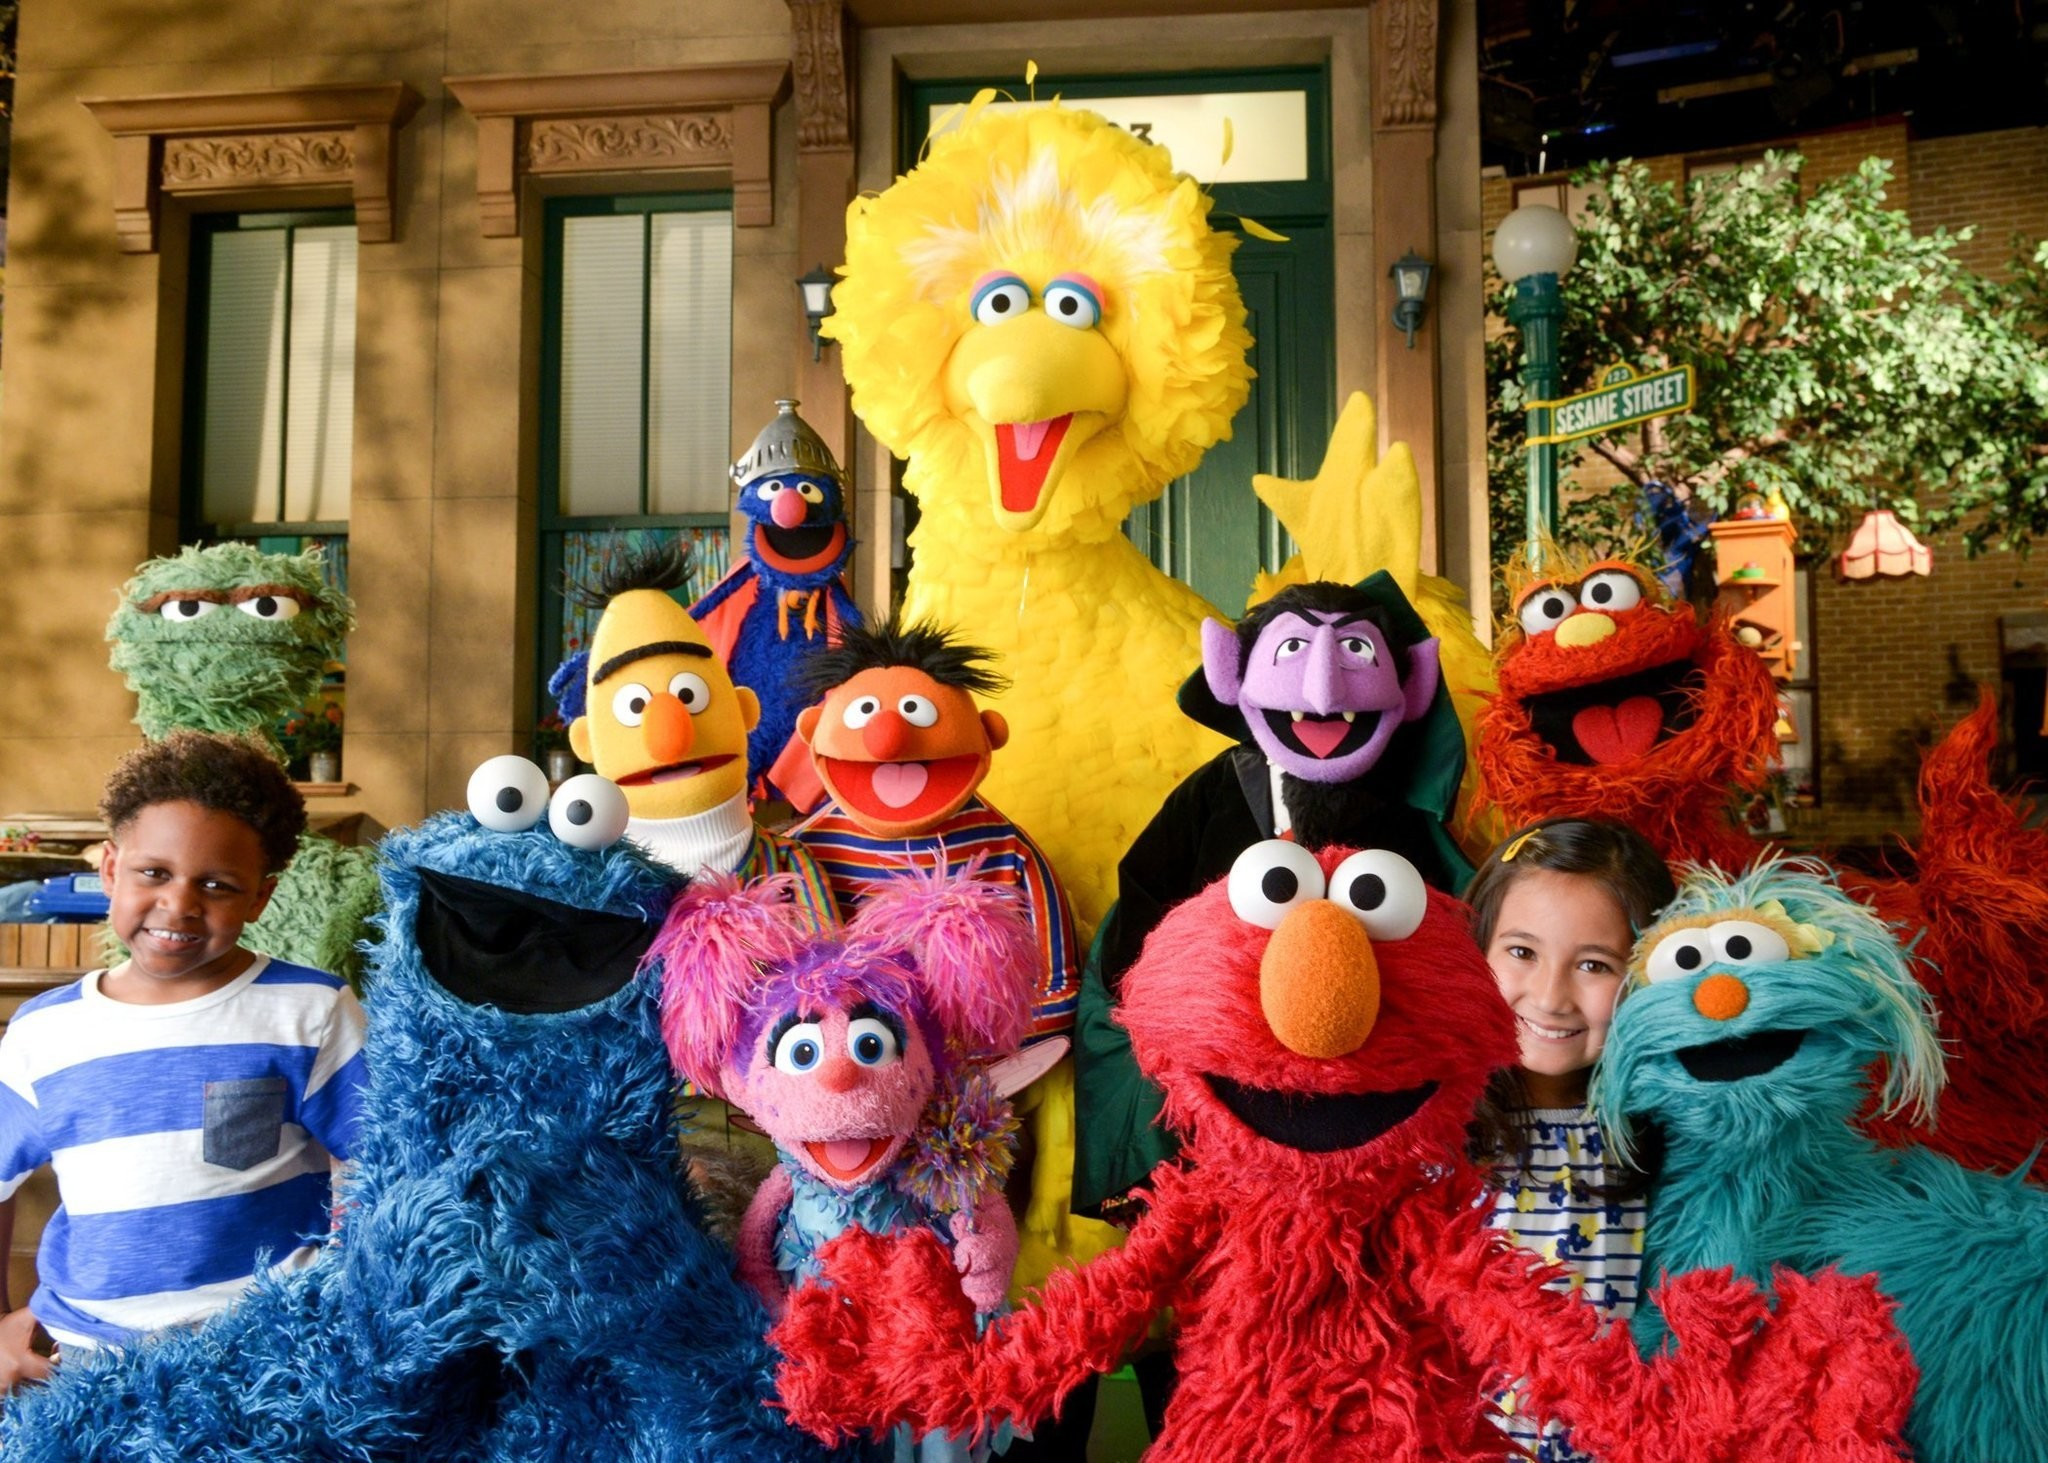 Res: 2048x1463, Sesame Street HD wallpapers #1